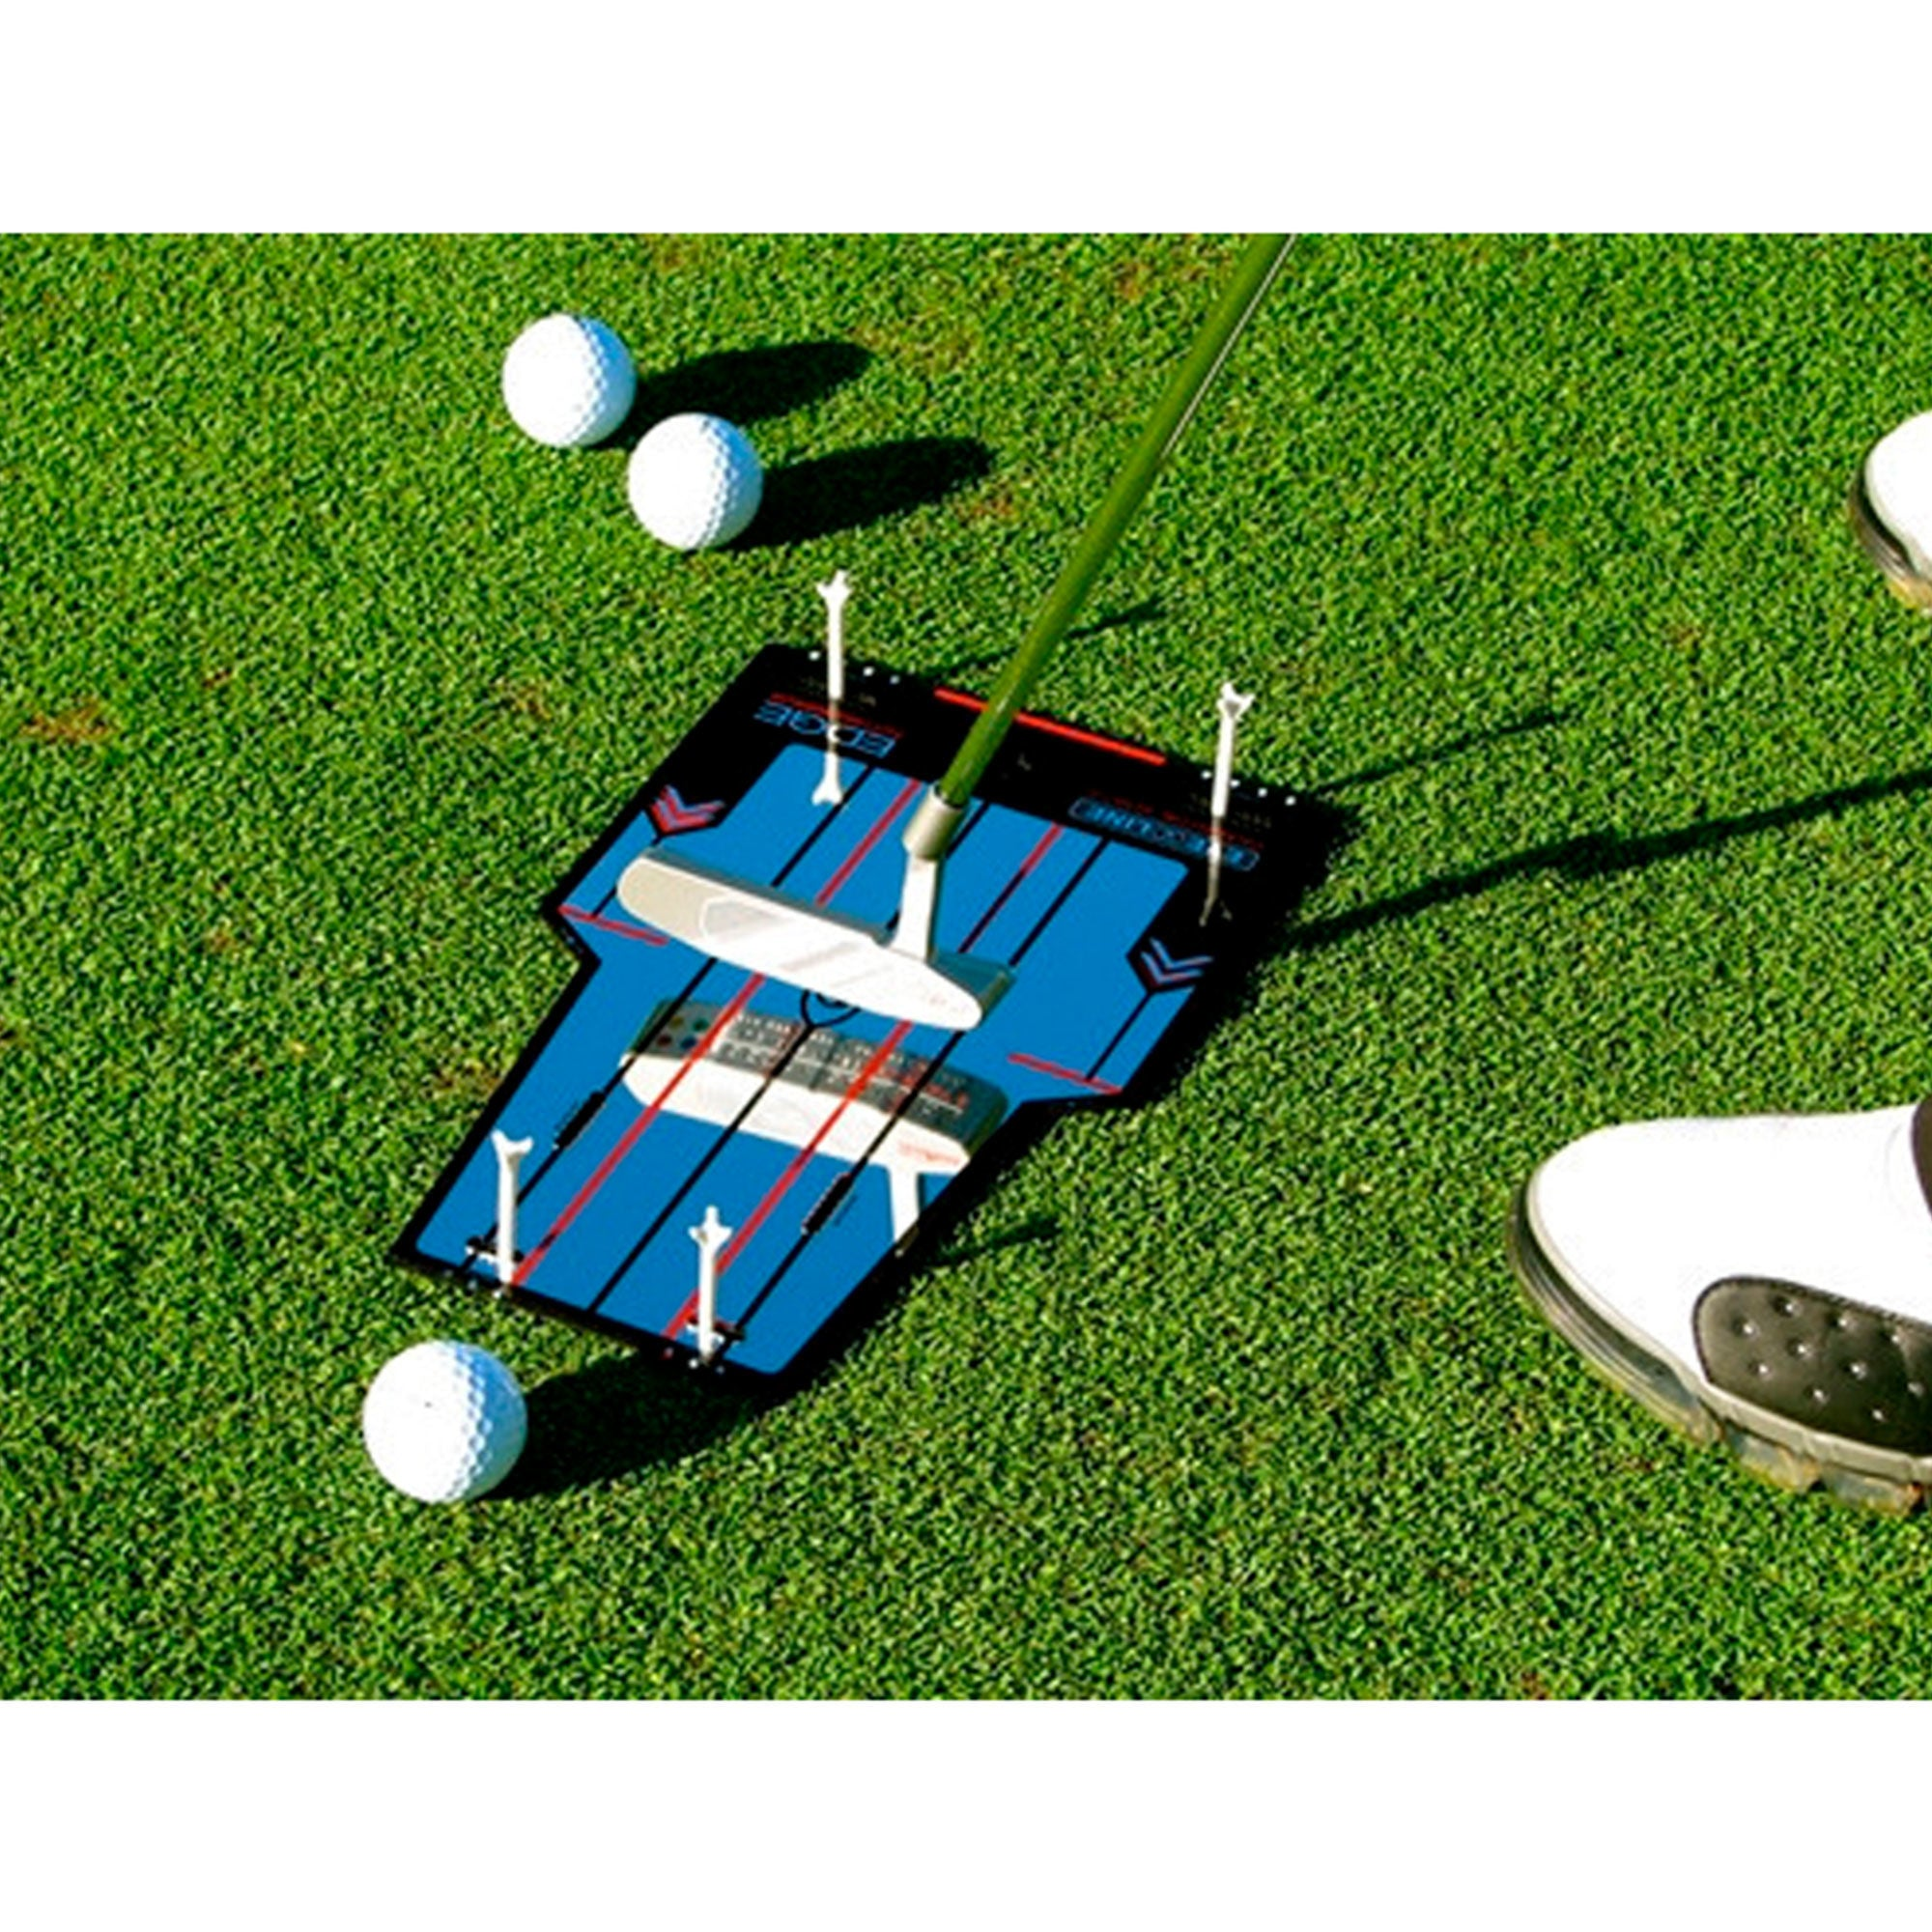 EyeLine Golf - Edge Putting Mirror - Event Stuff Ltd Owns Putterfingers.com!